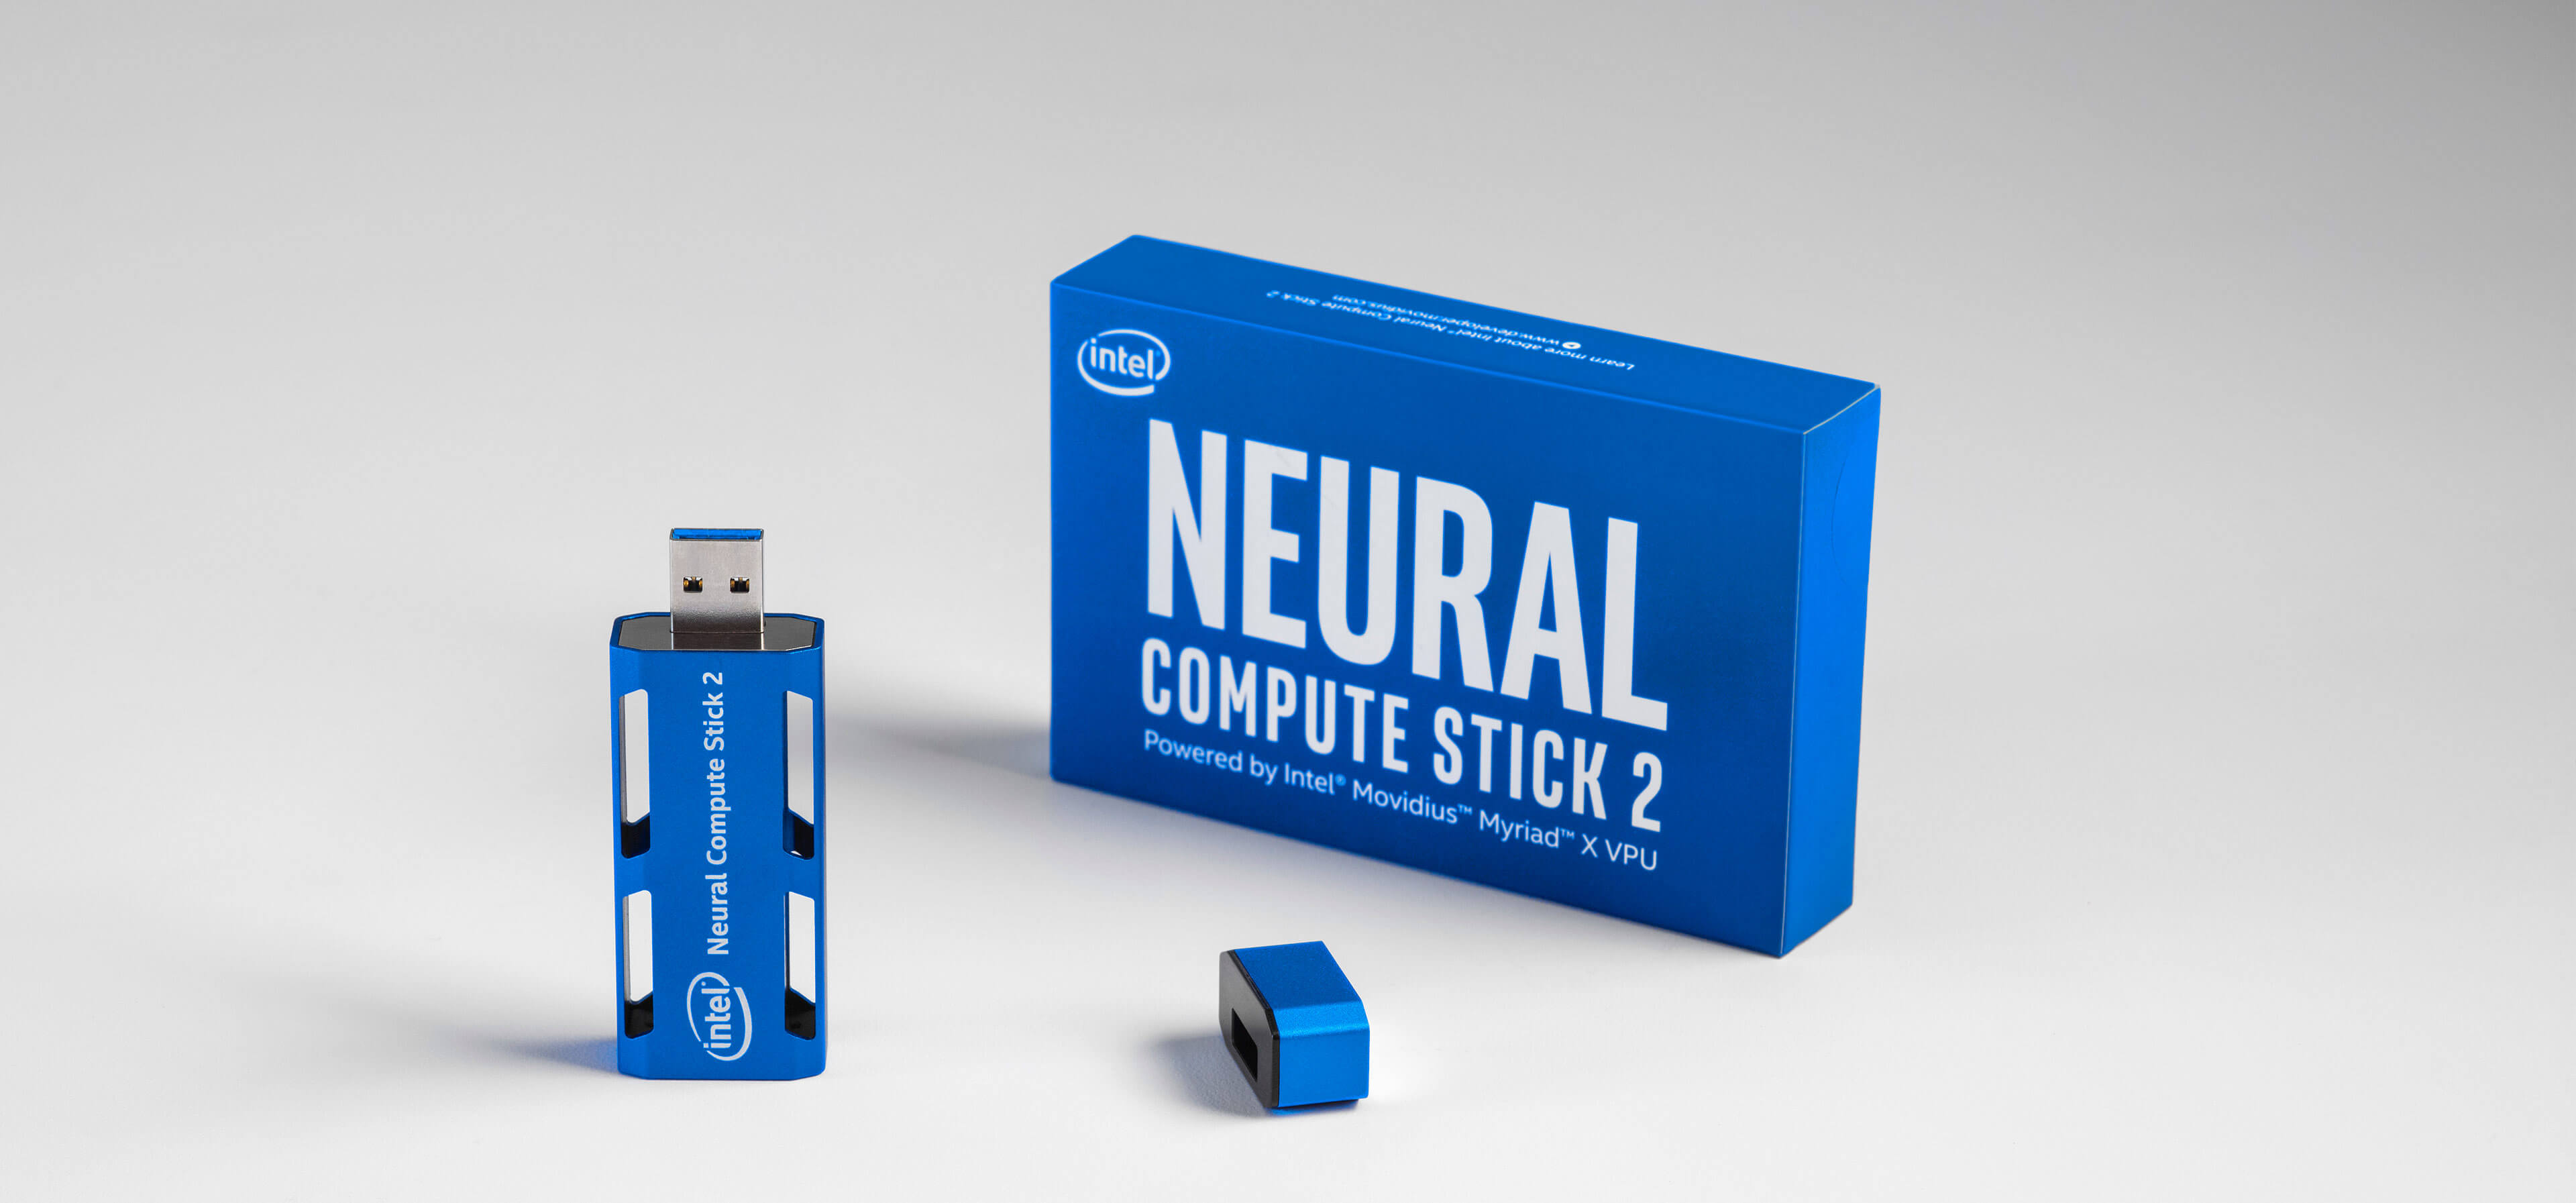 Intel announces the Neural Compute Stick 2 for deep learning